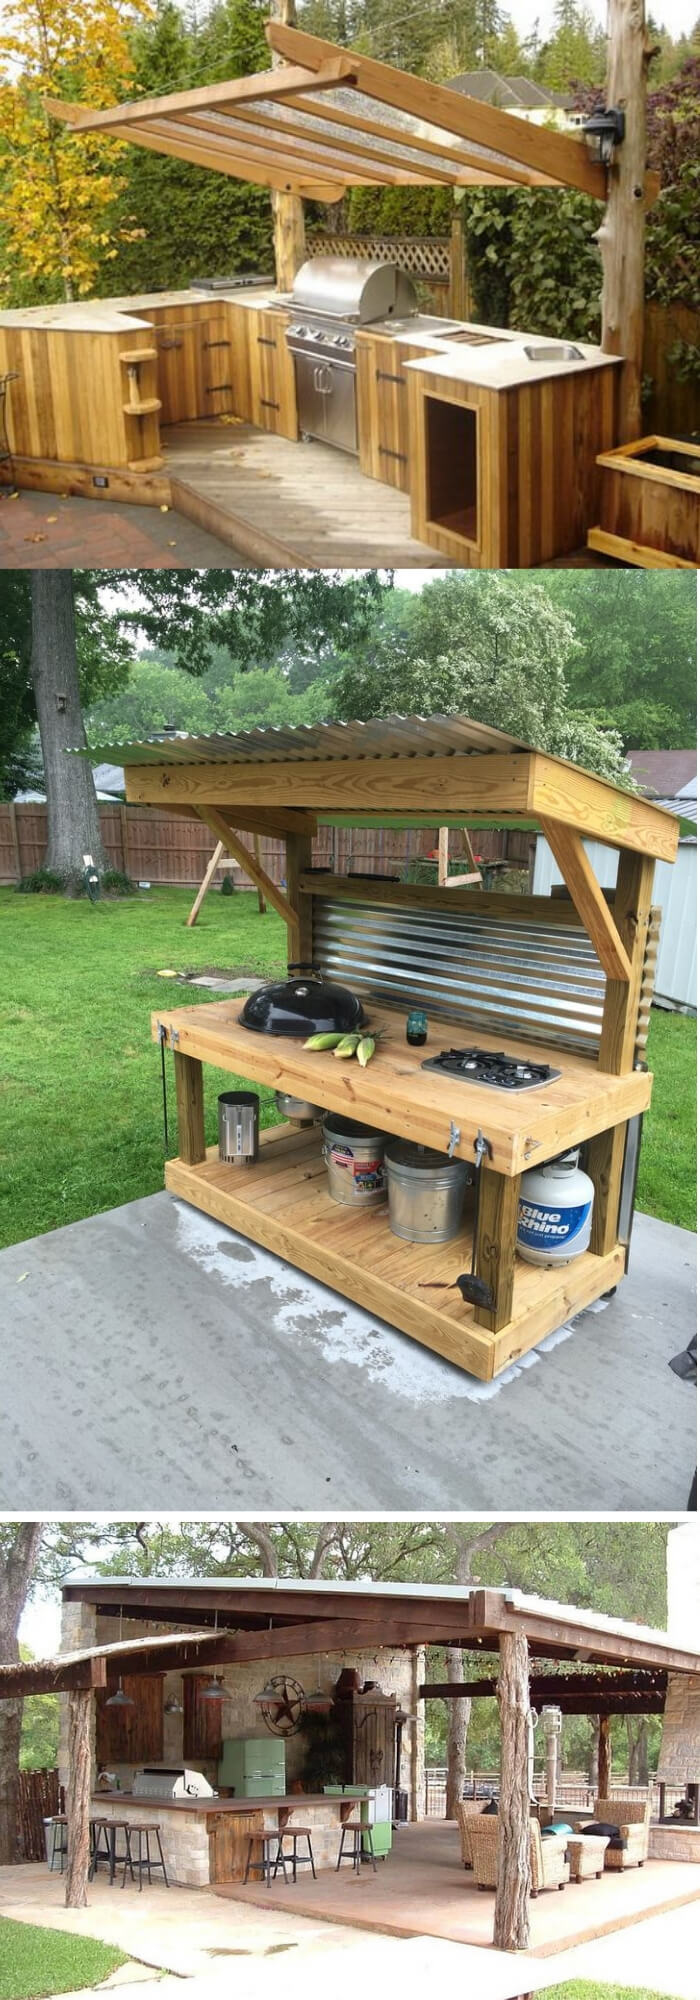 Cheap Outdoor Kitchen | DIY Outdoor Kitchen Ideas (Cheap, Simple, Modern,  And